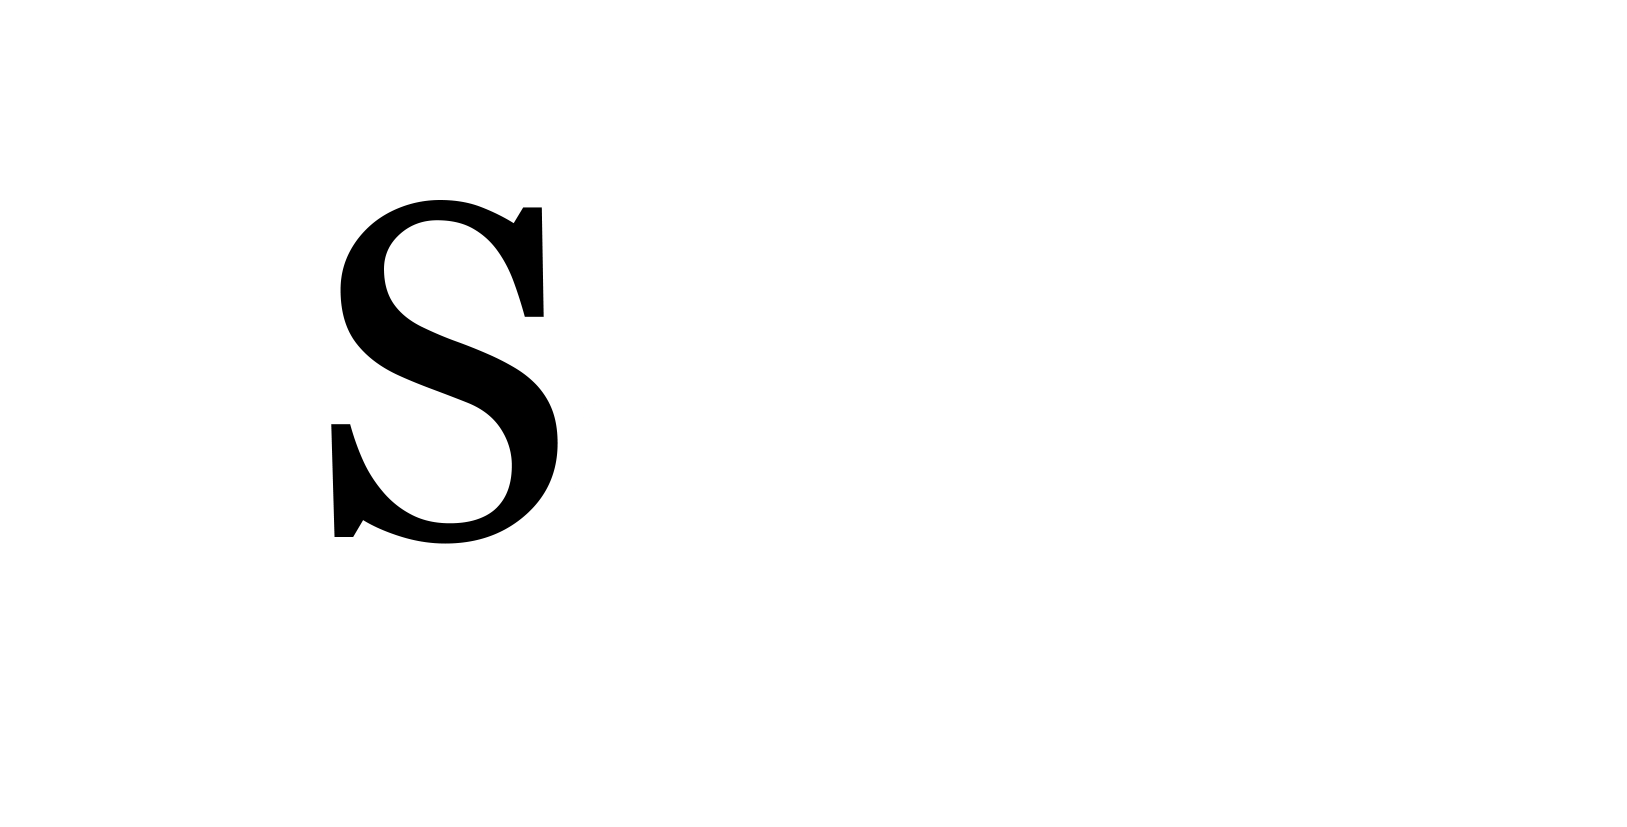 A light version of the Splash Copywriters logo